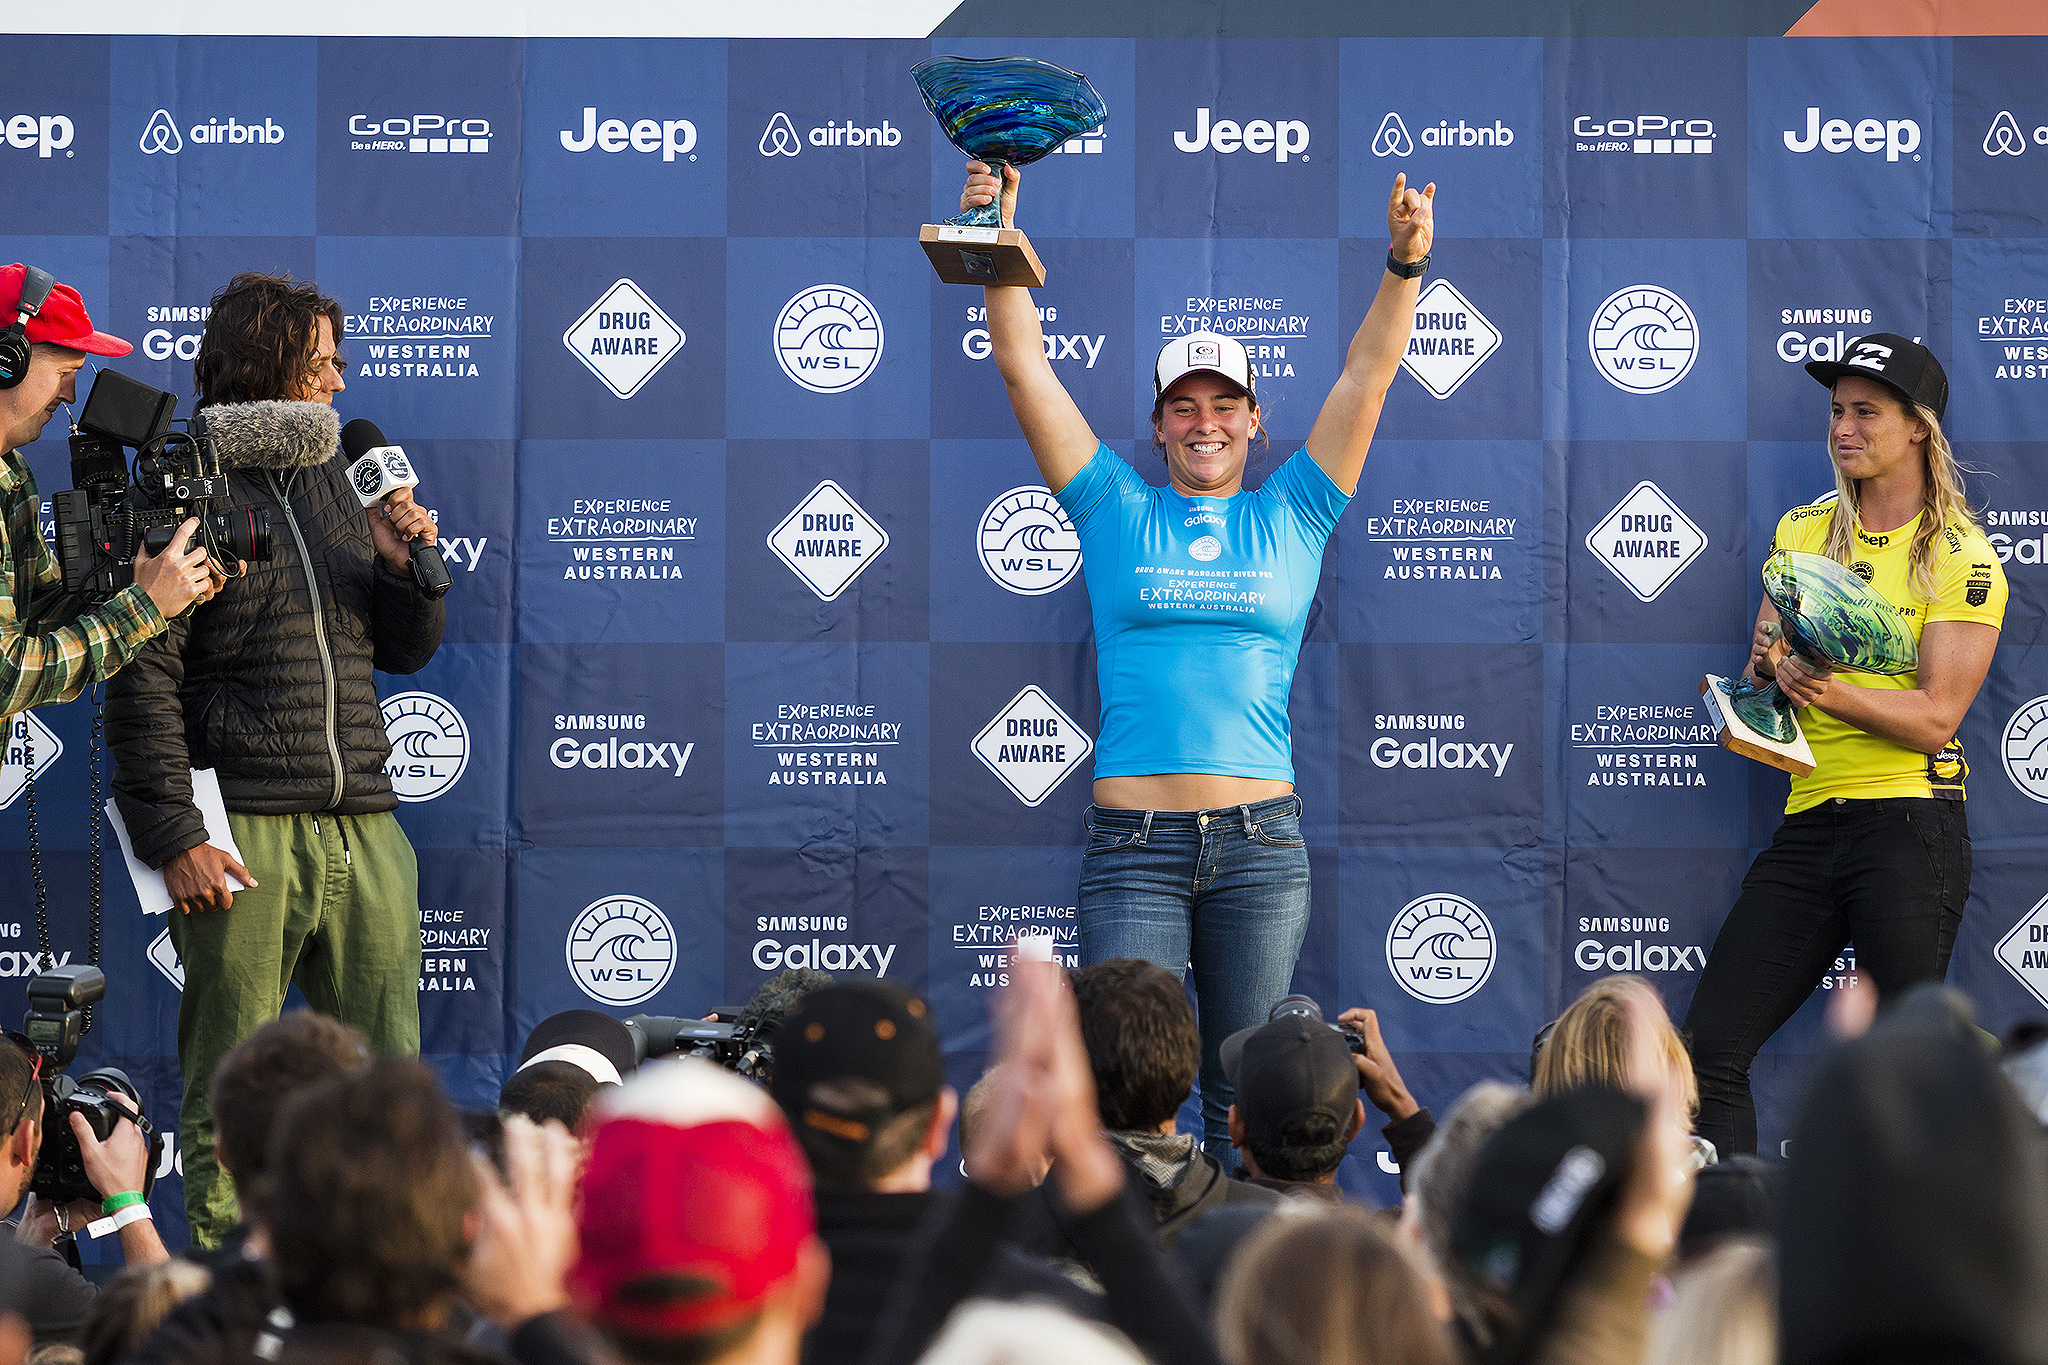 Tyler Wright of Australia (pictured) raises her winners trophy at the Drug Aware Margaret River Pro on Friday April 15, 2016. PHOTO: © WSL / Cestari SOCIAL: @edsloanephoto @wsl This image is the copyright of the World Surf League and is provided royalty free for editorial use only, in all media now known or hereafter created. No commercial rights granted. Sale or license of the images is prohibited. This image is a factually accurate rendering of what it depicts and has not been modified or augmented except for standard cropping and toning. ALL RIGHTS RESERVED. placing runner up at the Drug Aware Margaret River Pro in Western Australia.